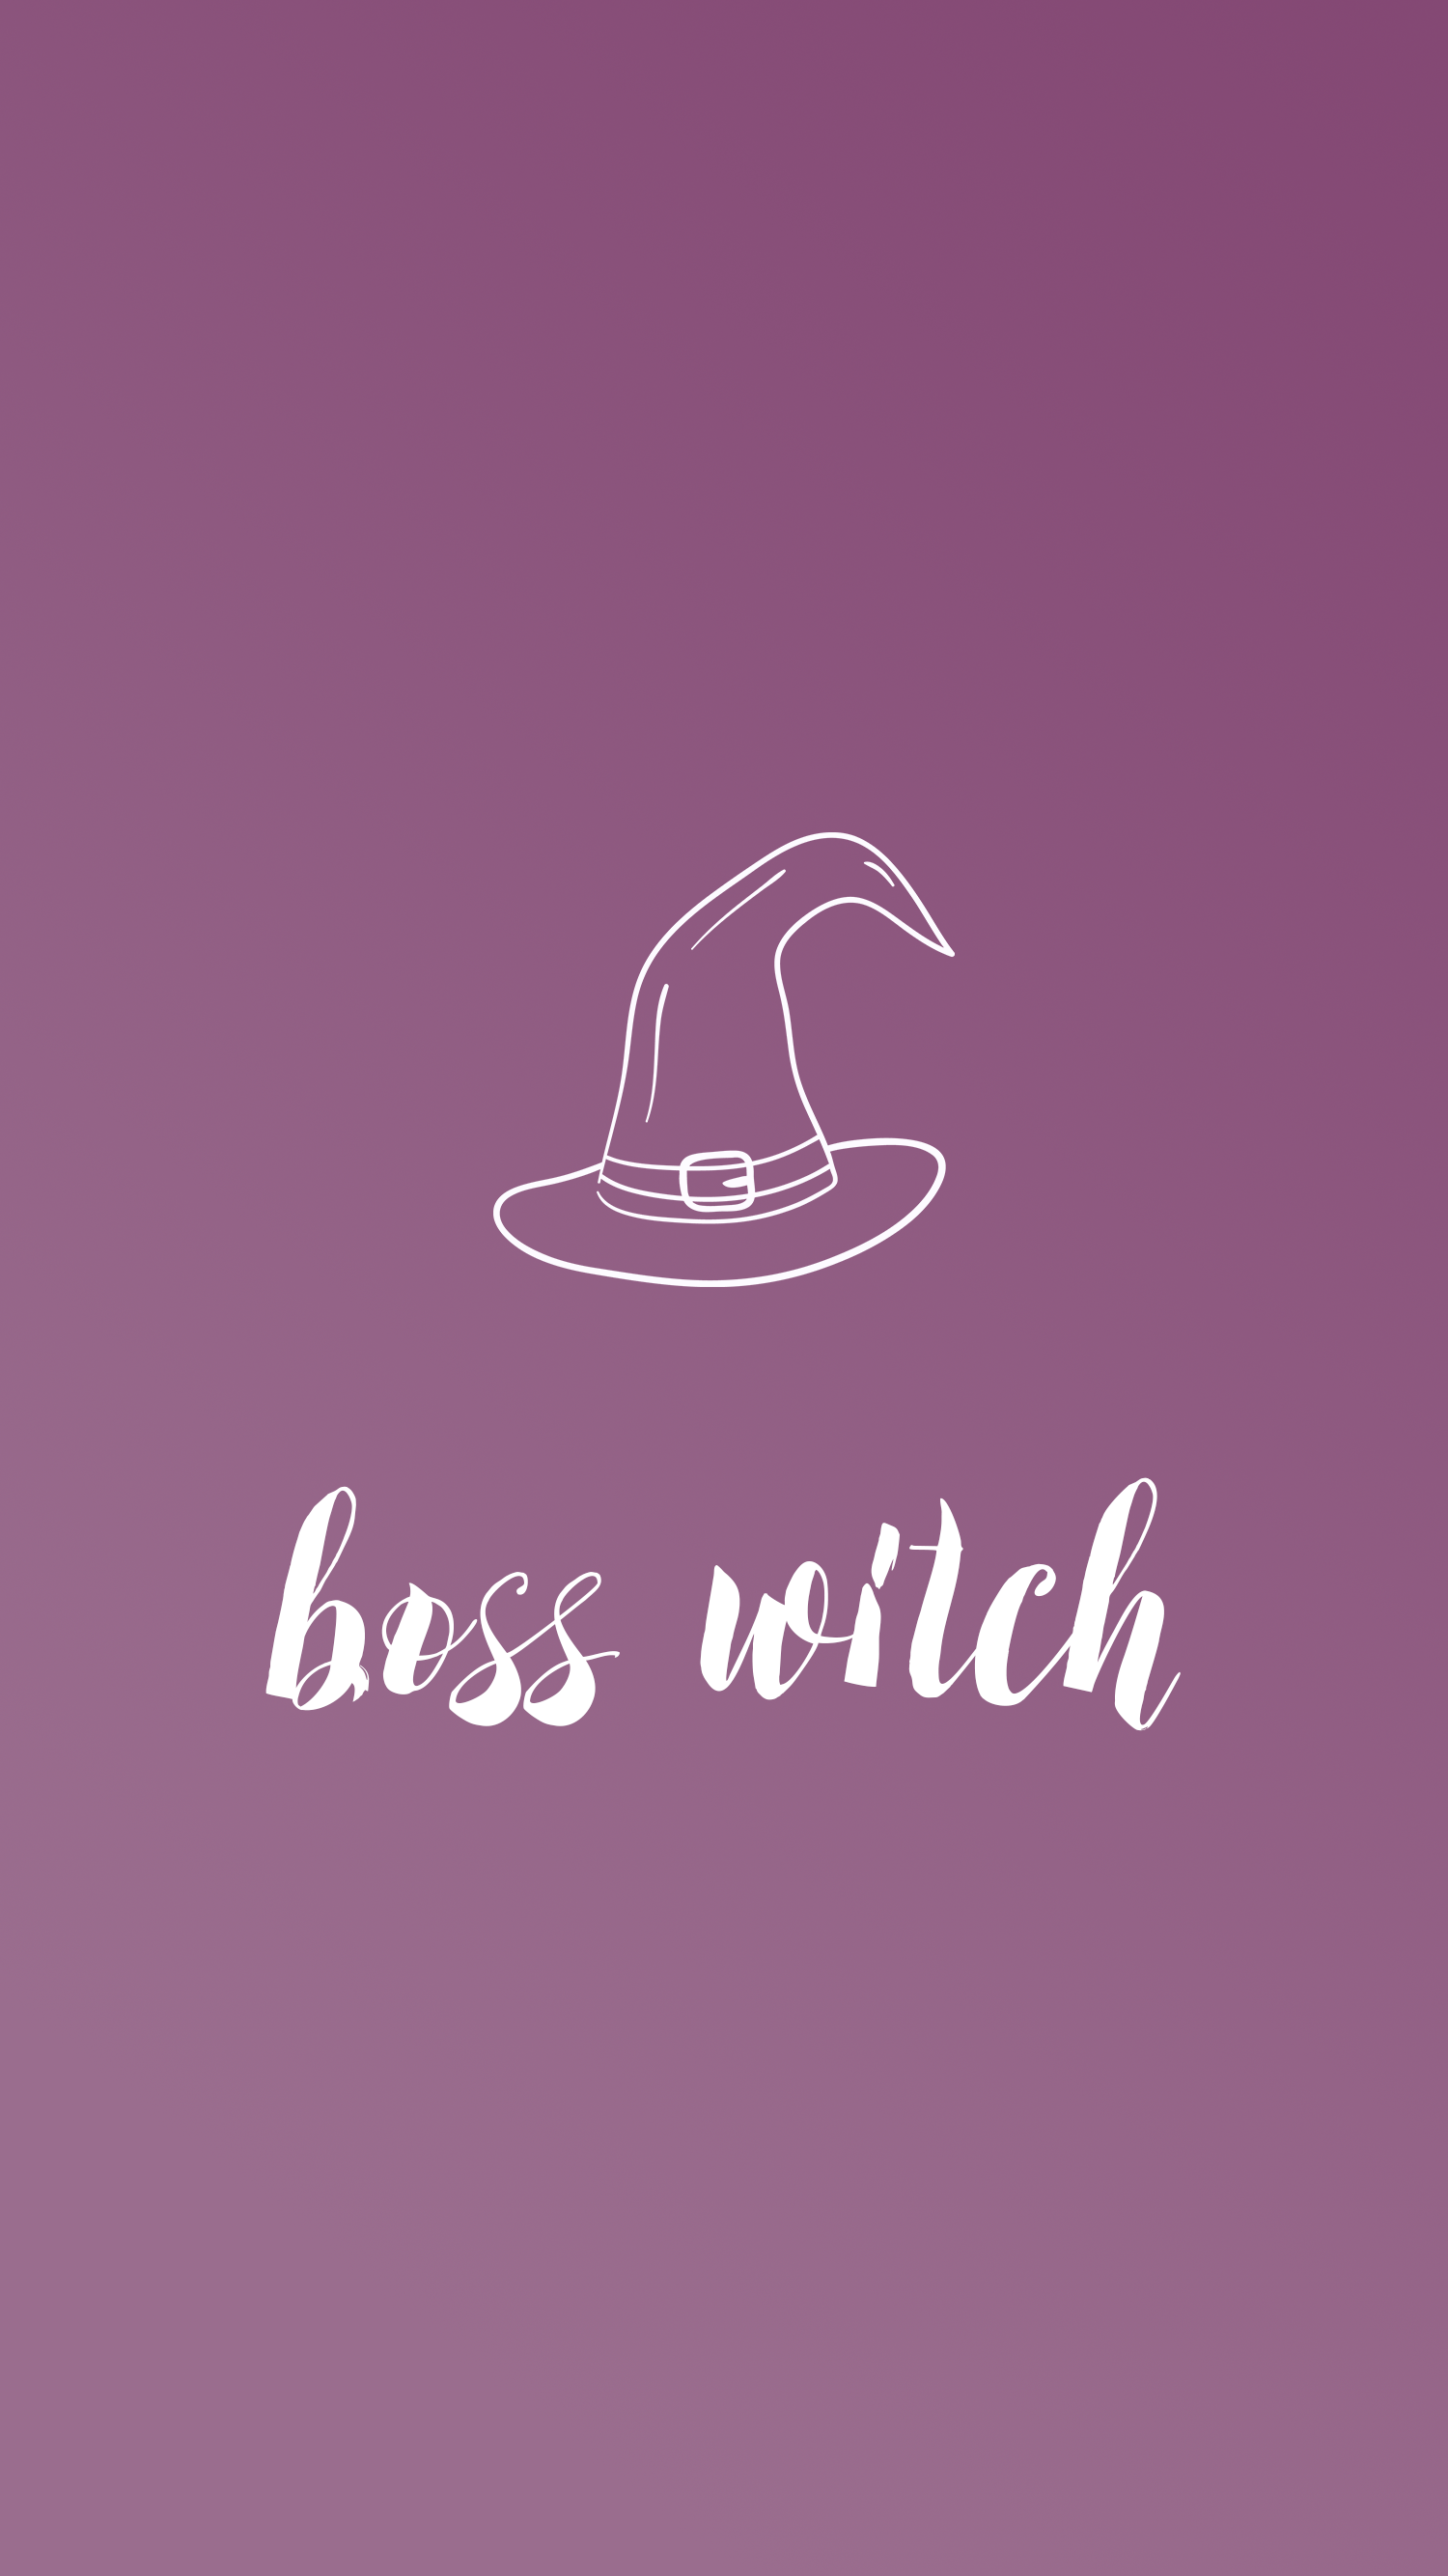 10 Snarky Halloween Phone Wallpapers For Basic Witches Witchy Wallpaper Witch Wallpaper Halloween Wallpaper Iphone